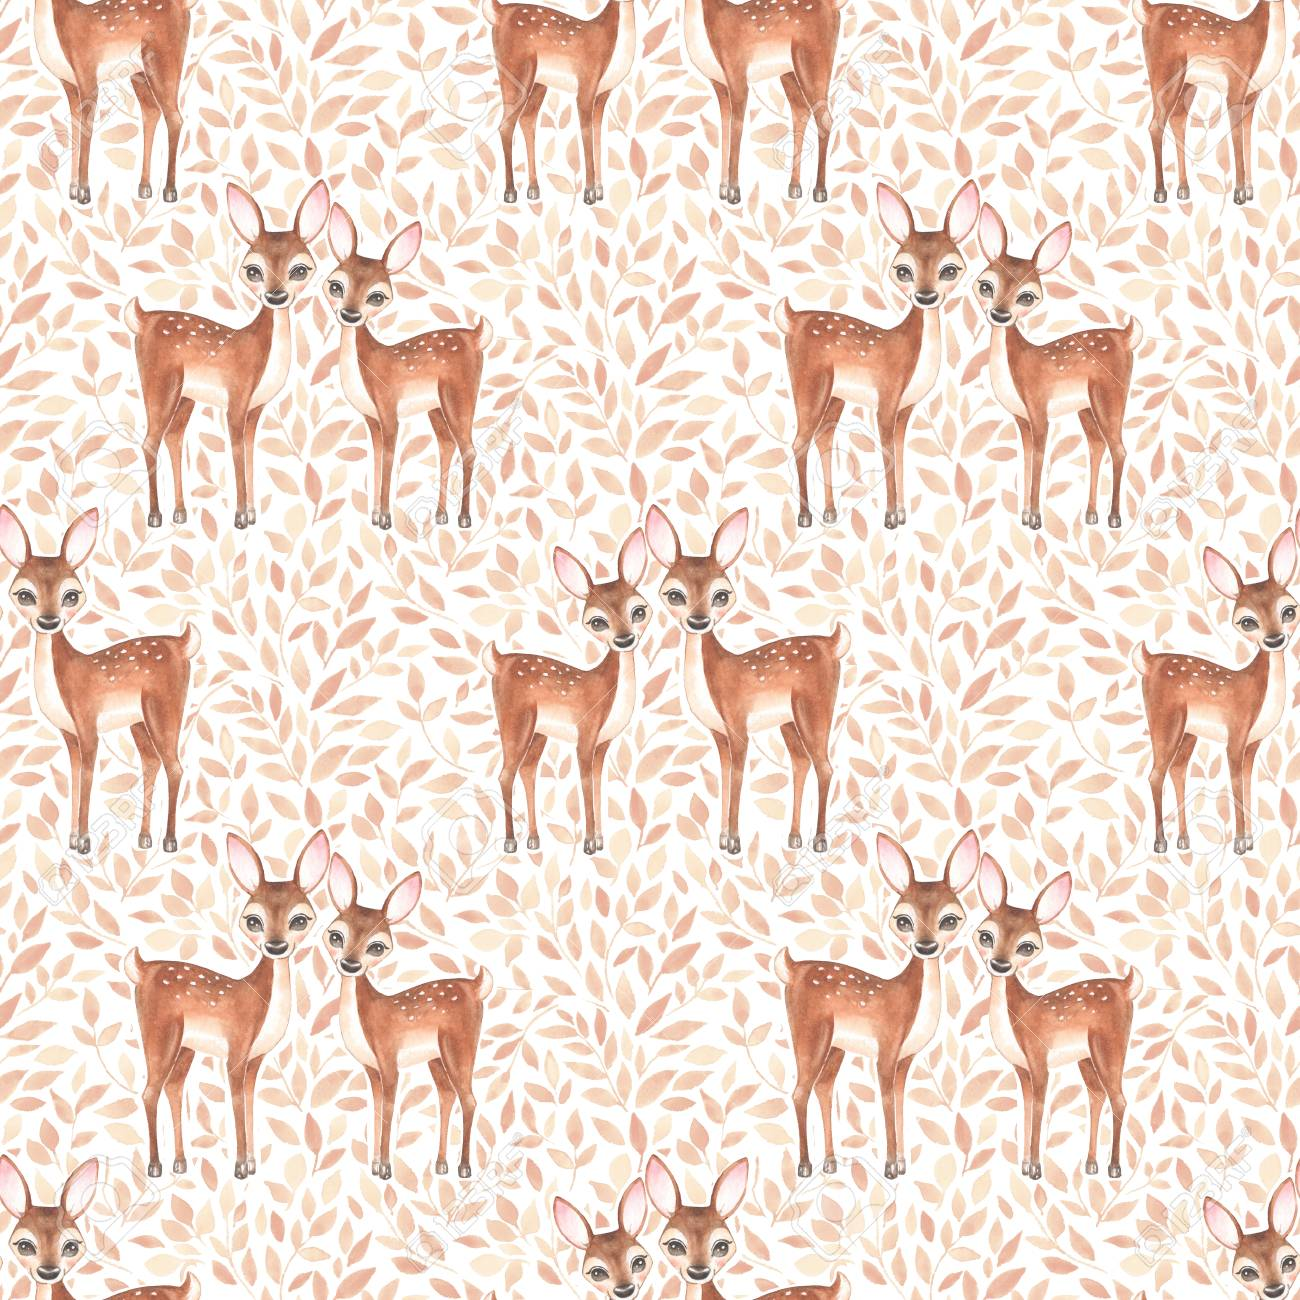 Watercolor floral pattern with fawns - 76128942